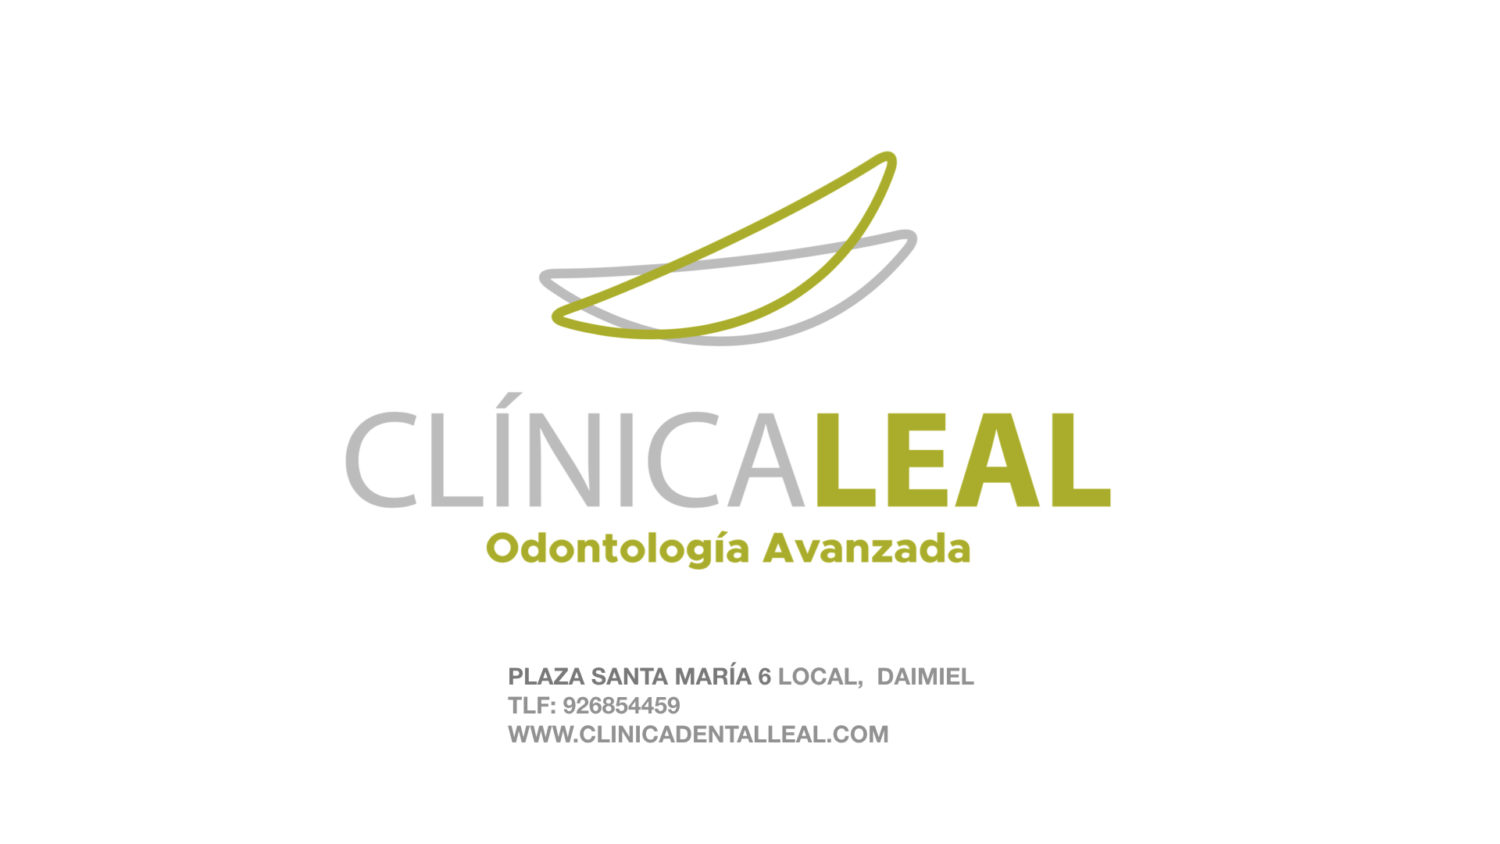 CLINICA LEAL